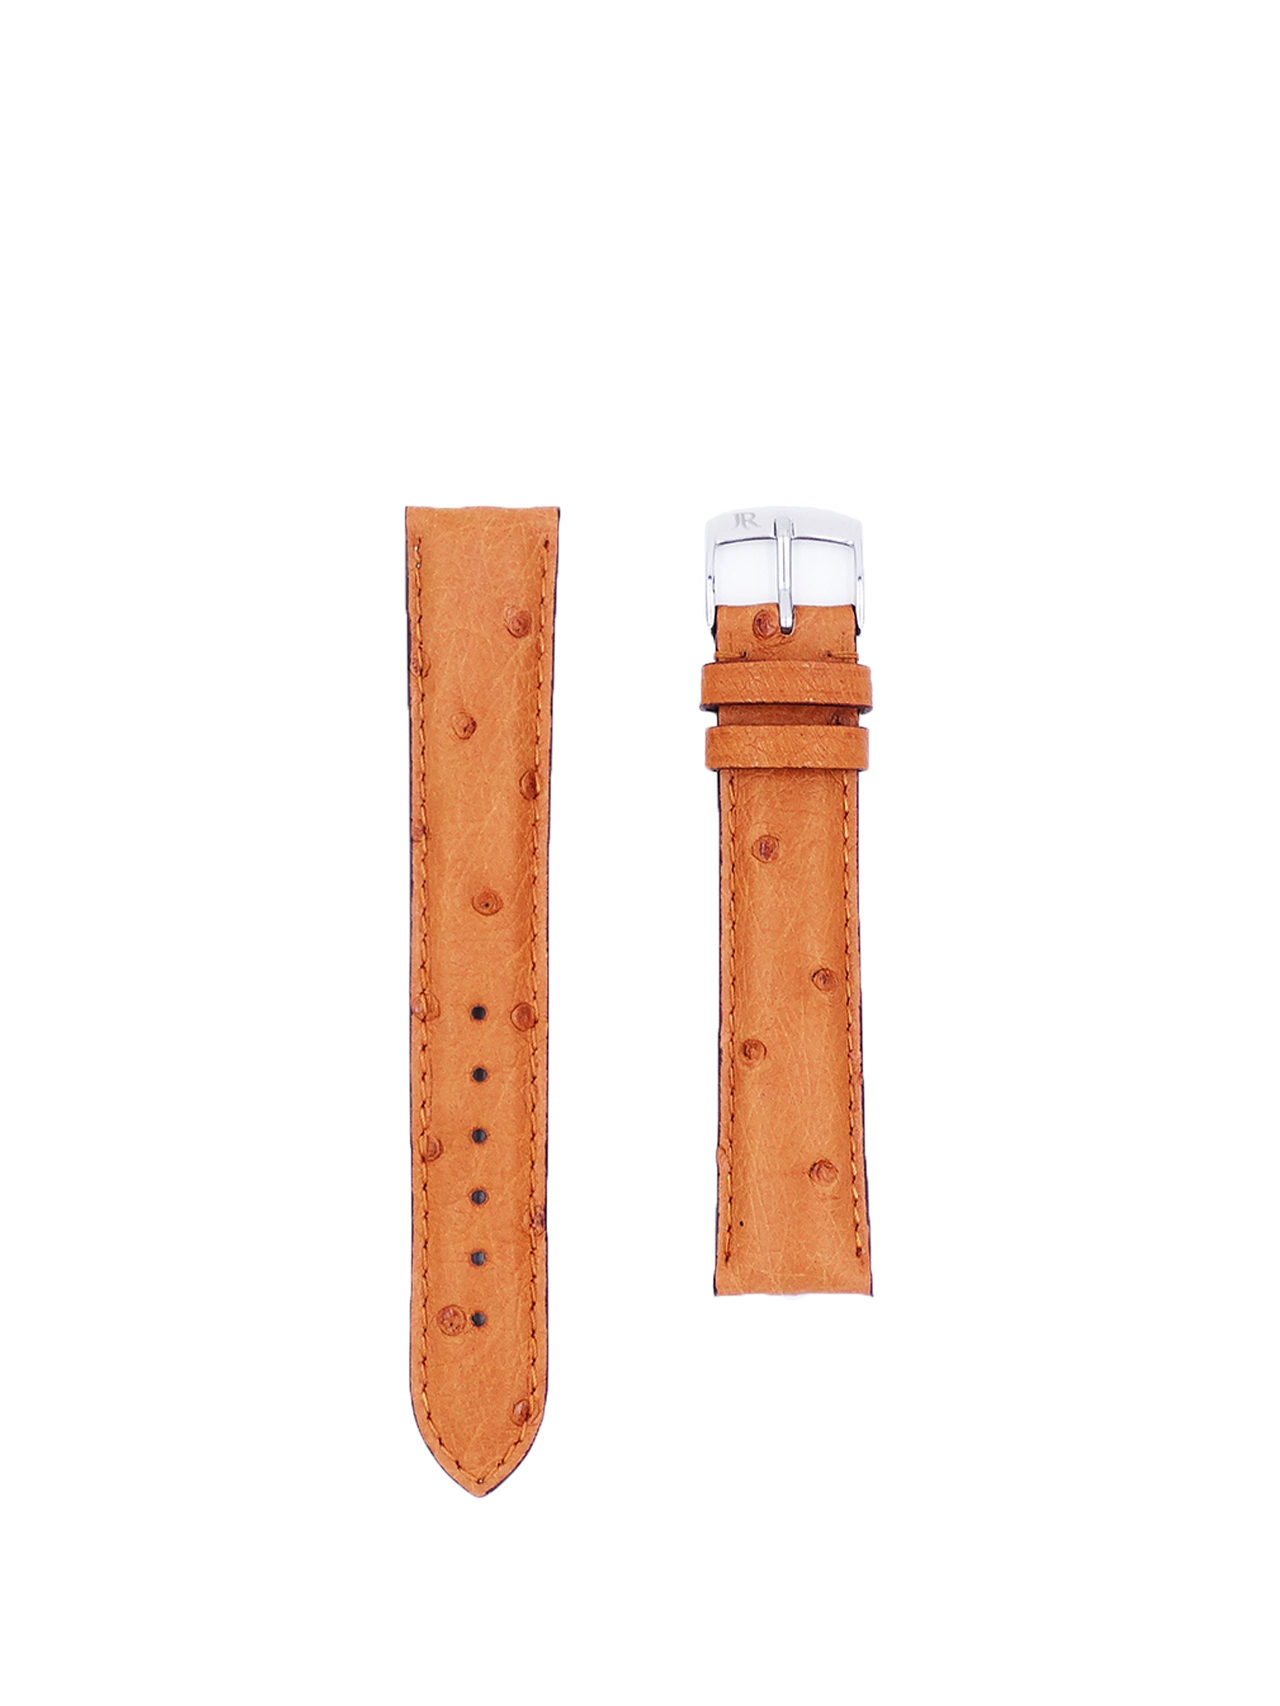 watch straps nyc ostrish